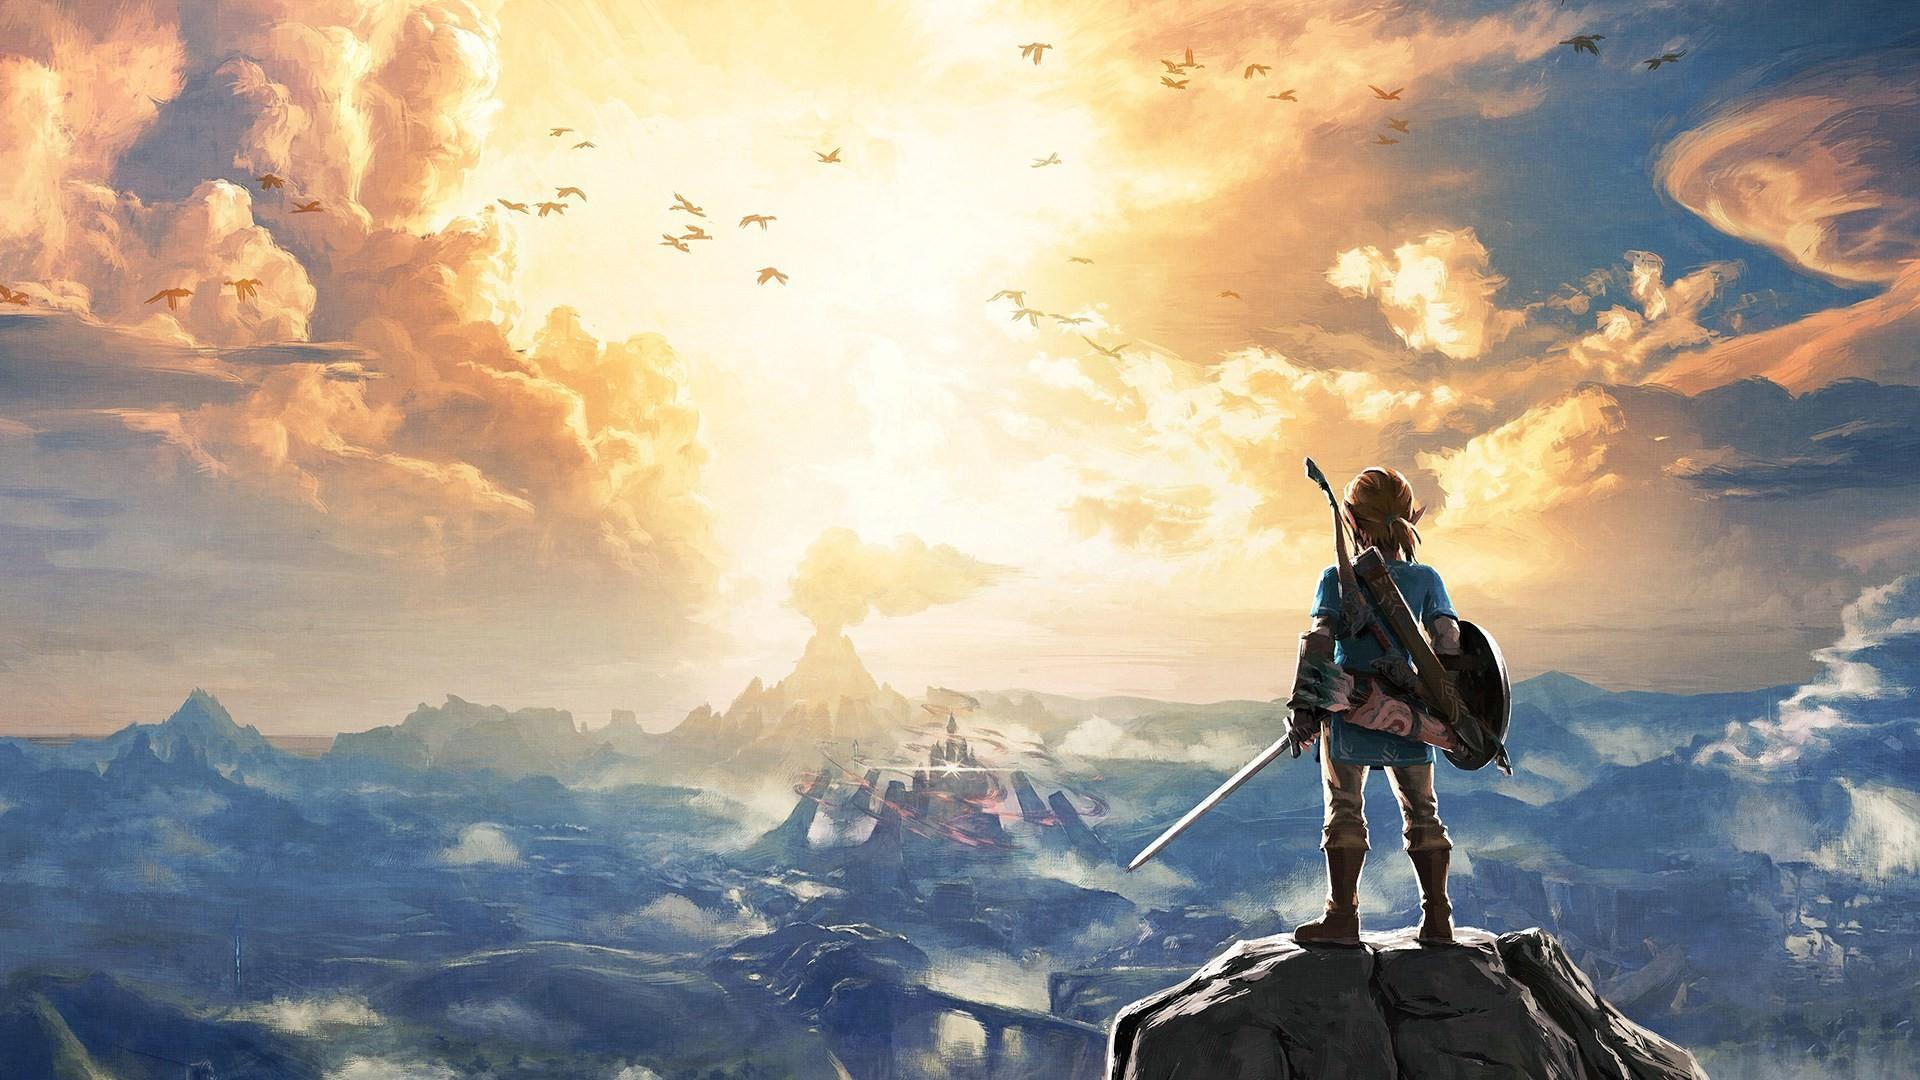 Wallpaper Link Game Nintendo The Legend Of Zelda Breath Of The